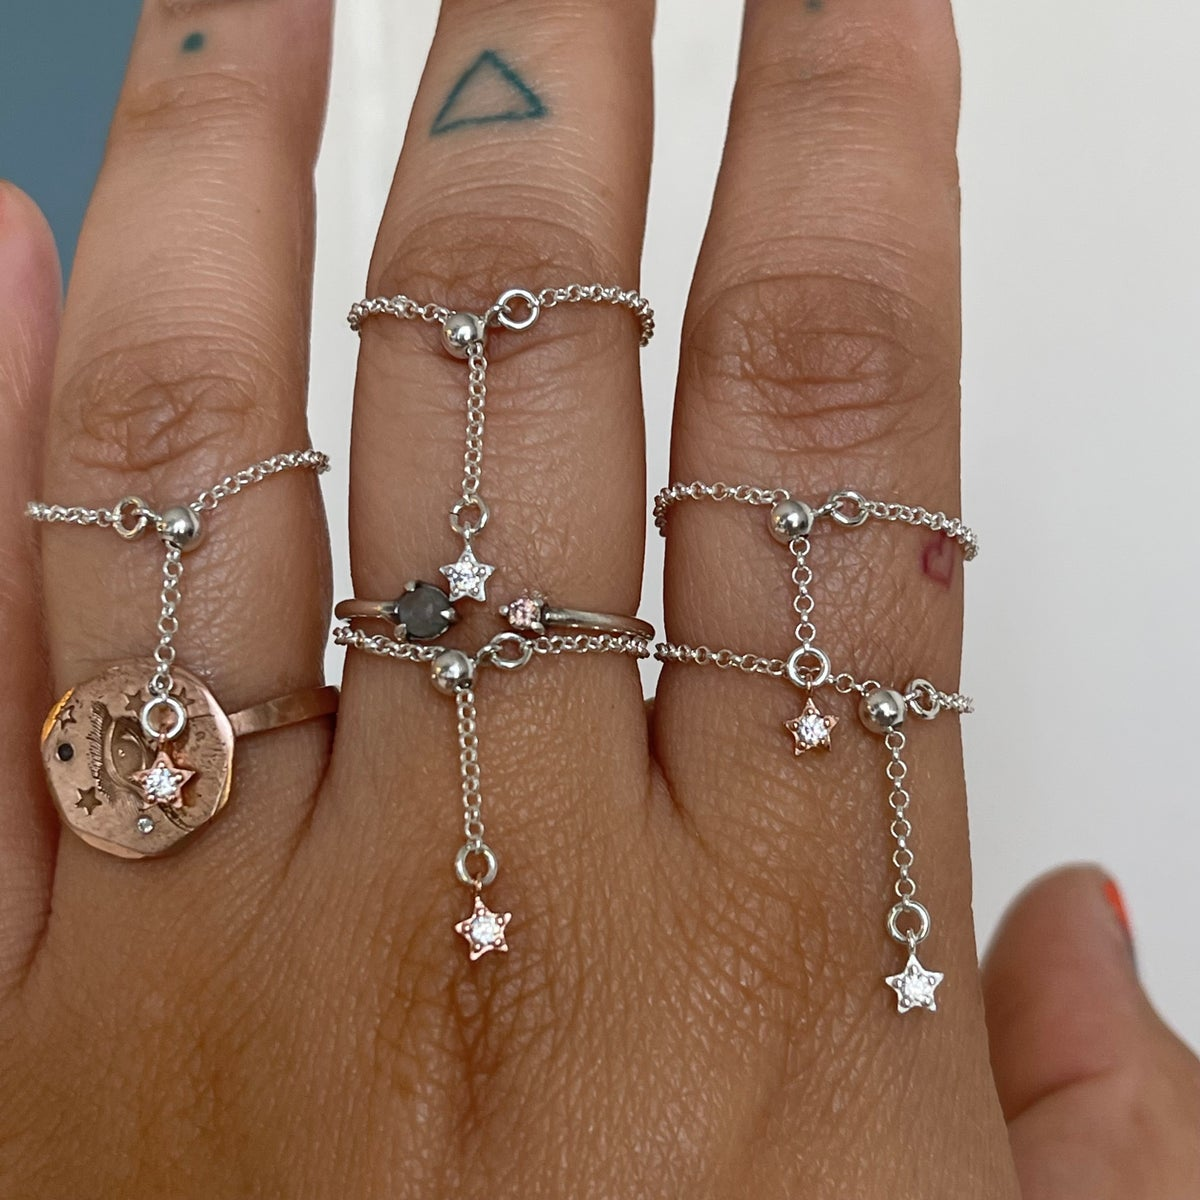 Image of Adjustable chain and star ring